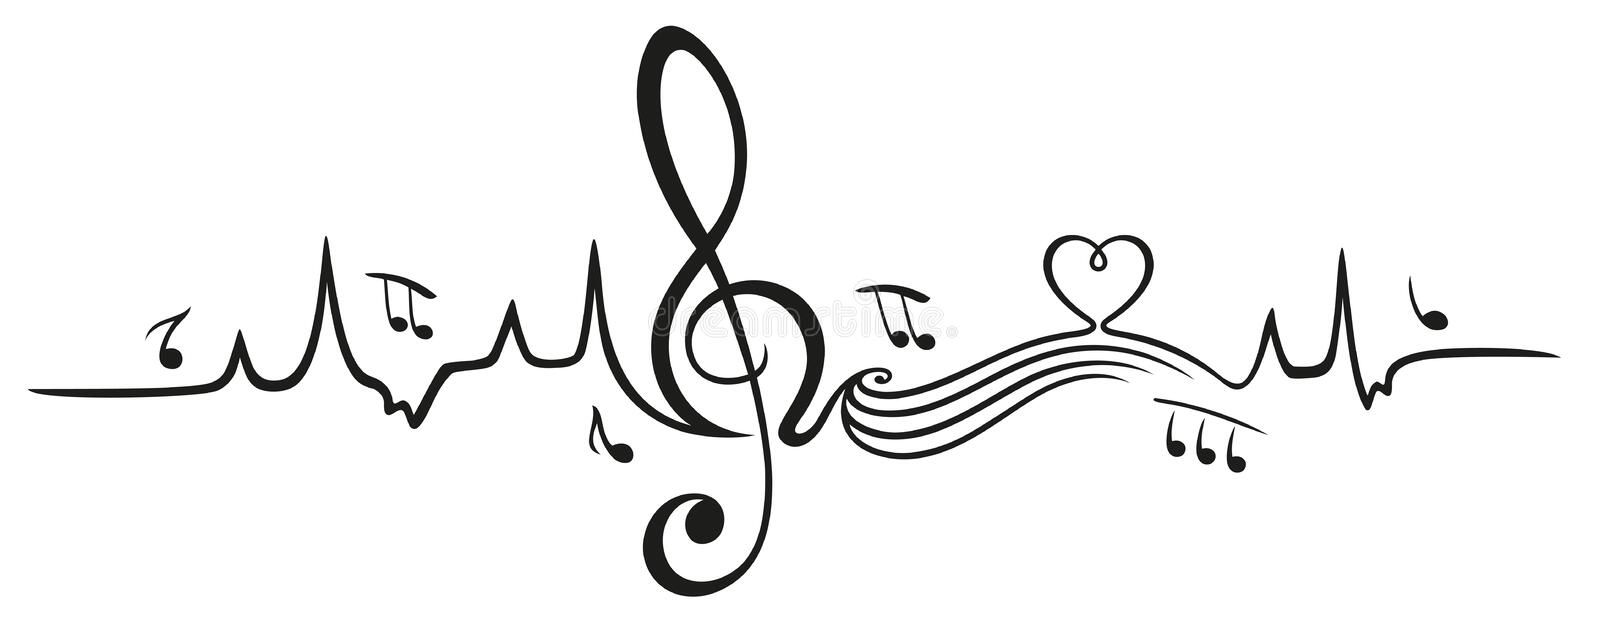 Heartbeat, love for music vector illustration